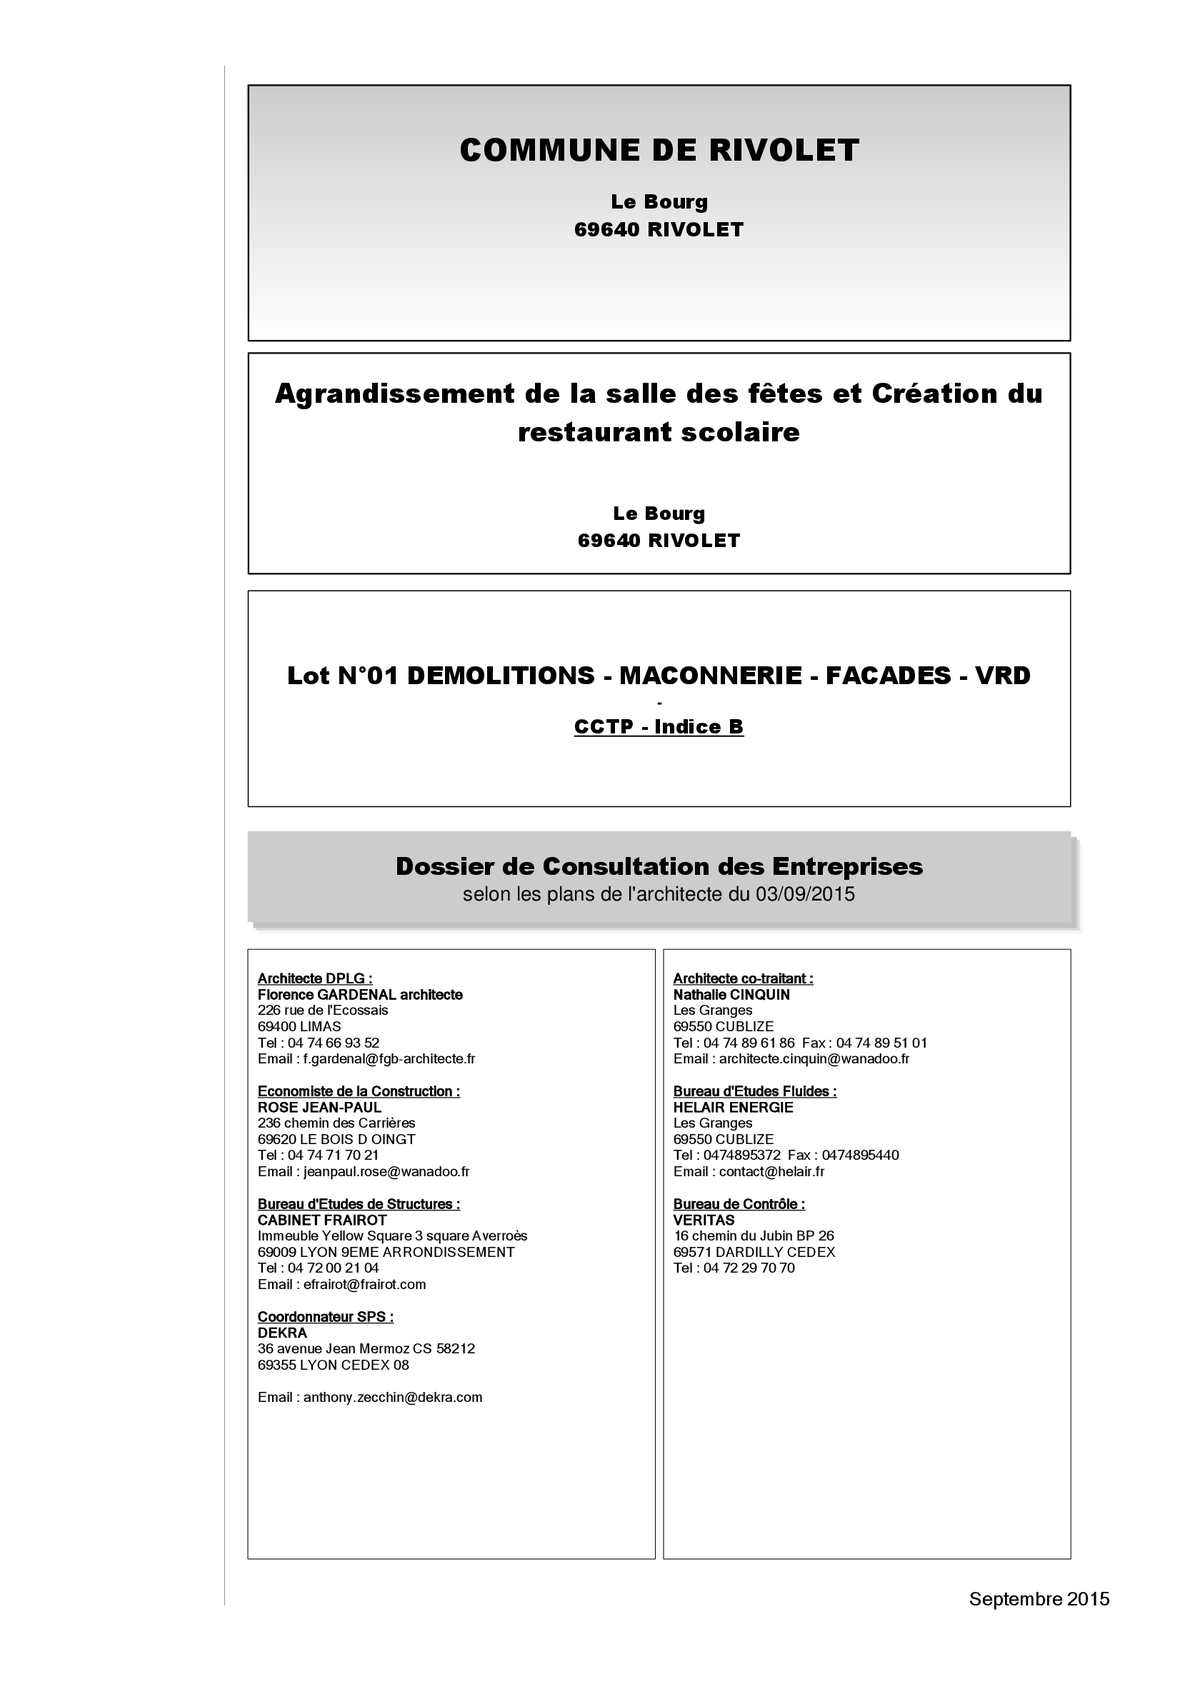 Calam o 0402 dce 01 d molitions ma onnerie fa ades vrd b for Cctp architecte